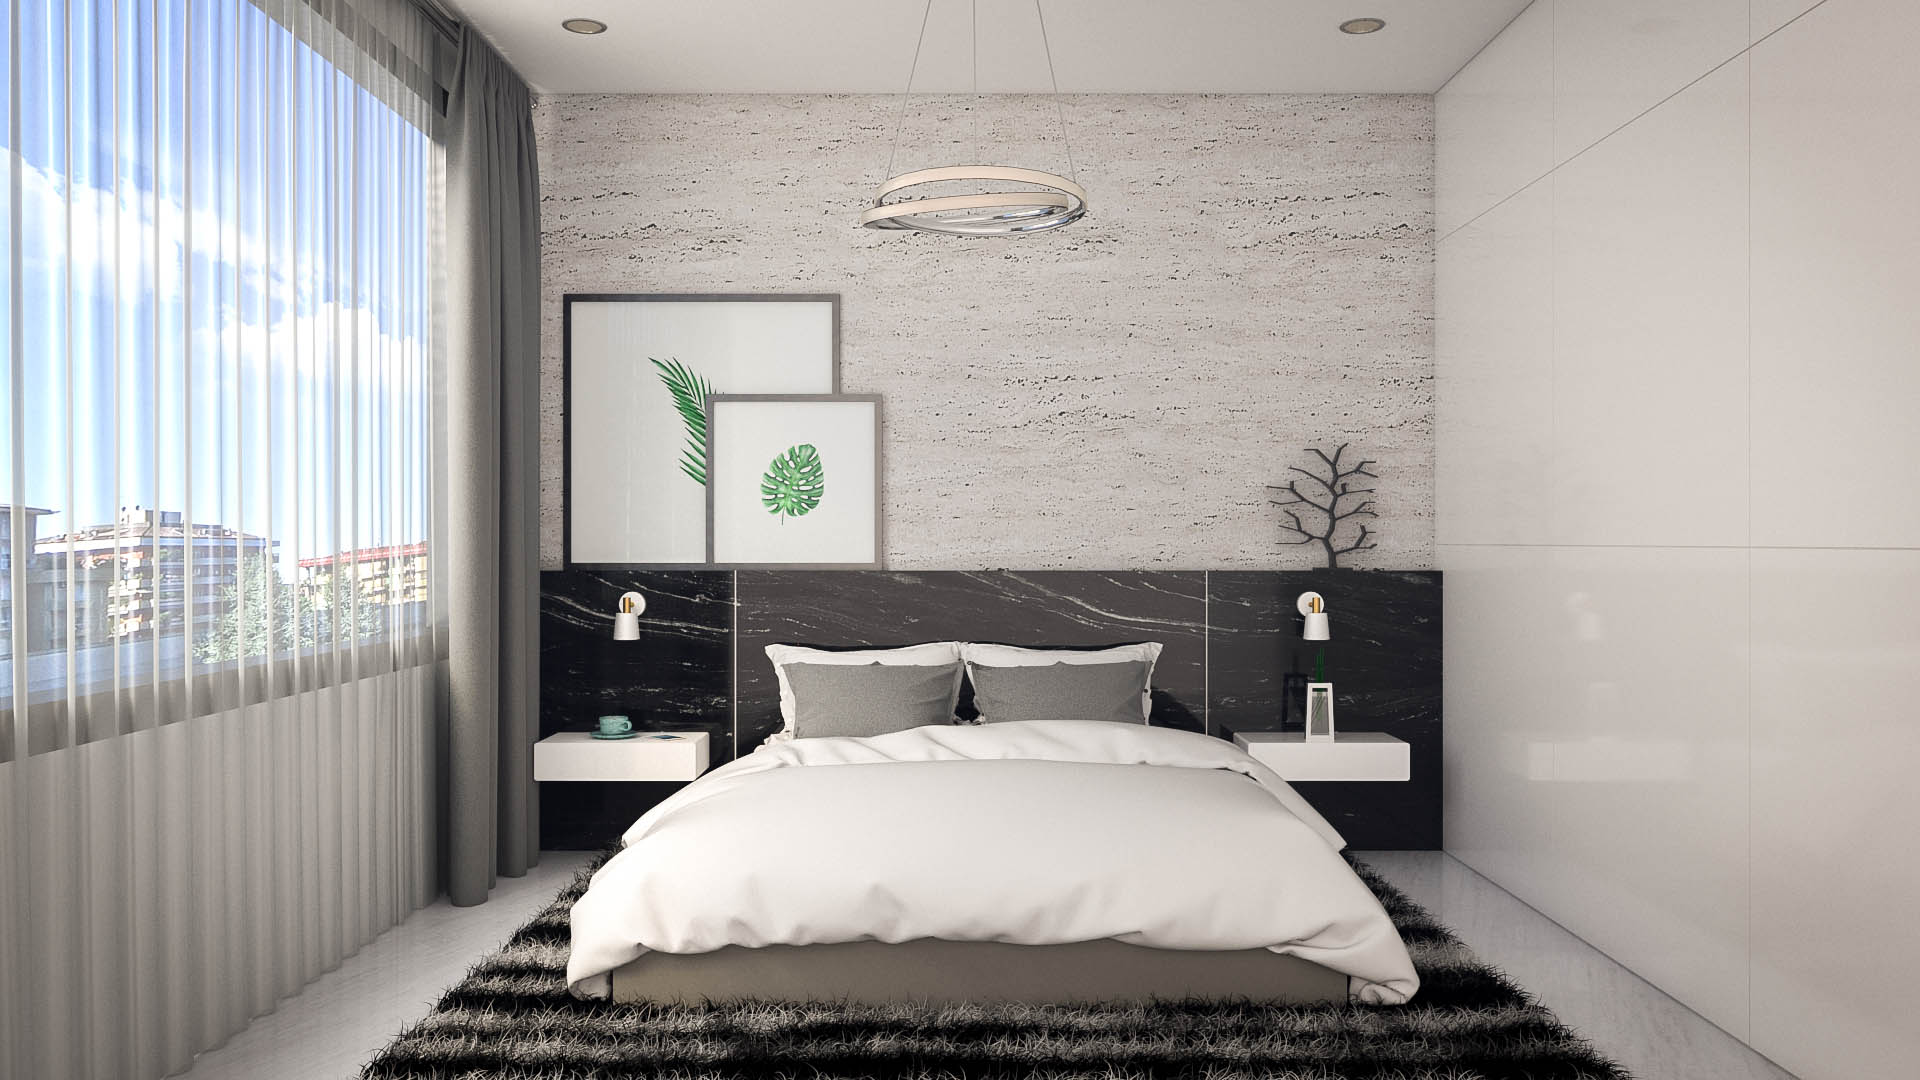 Small Modern Bedroom Design Ideas - roomdsign.com on Minimalist Modern Simple Bedroom Design  id=71785